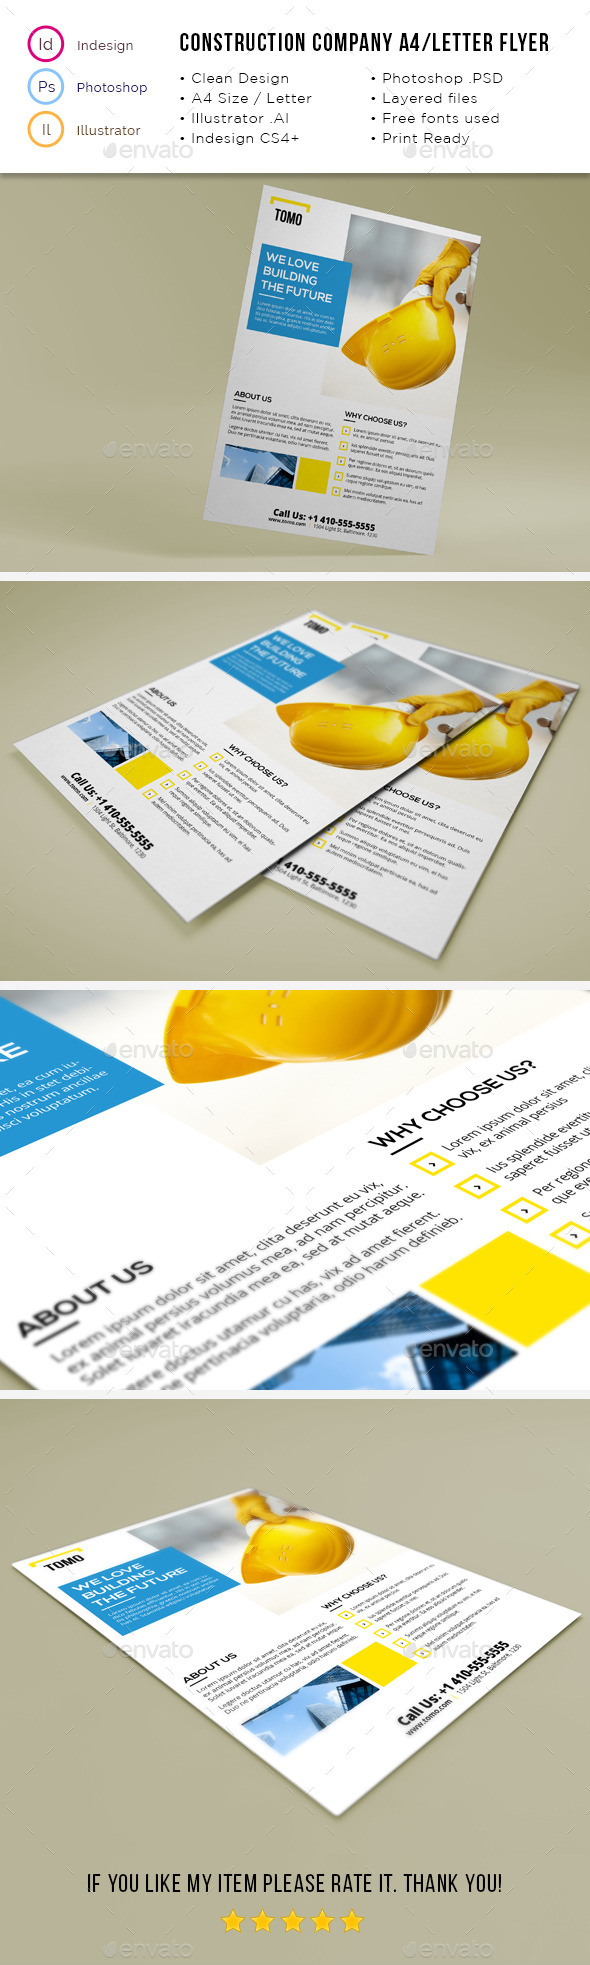 Construction Company A4 / Letter Flyer 02 - Corporate Flyers